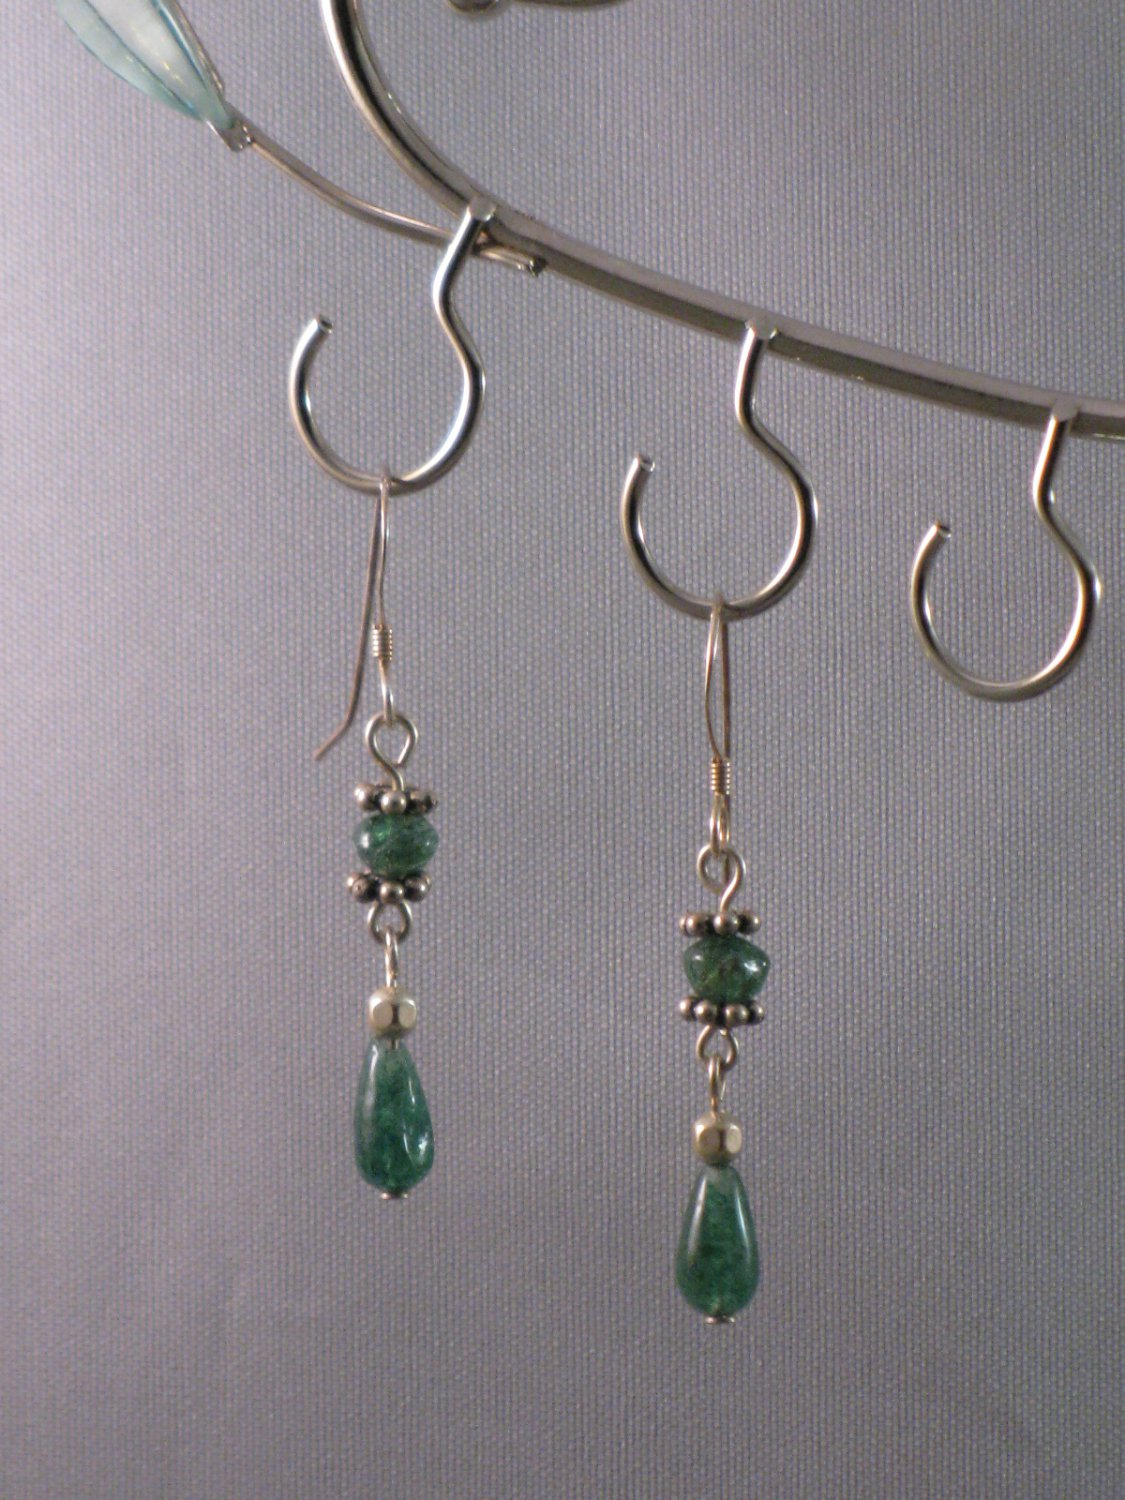 Green Adventurine Sterling Silver Earrings - S102C